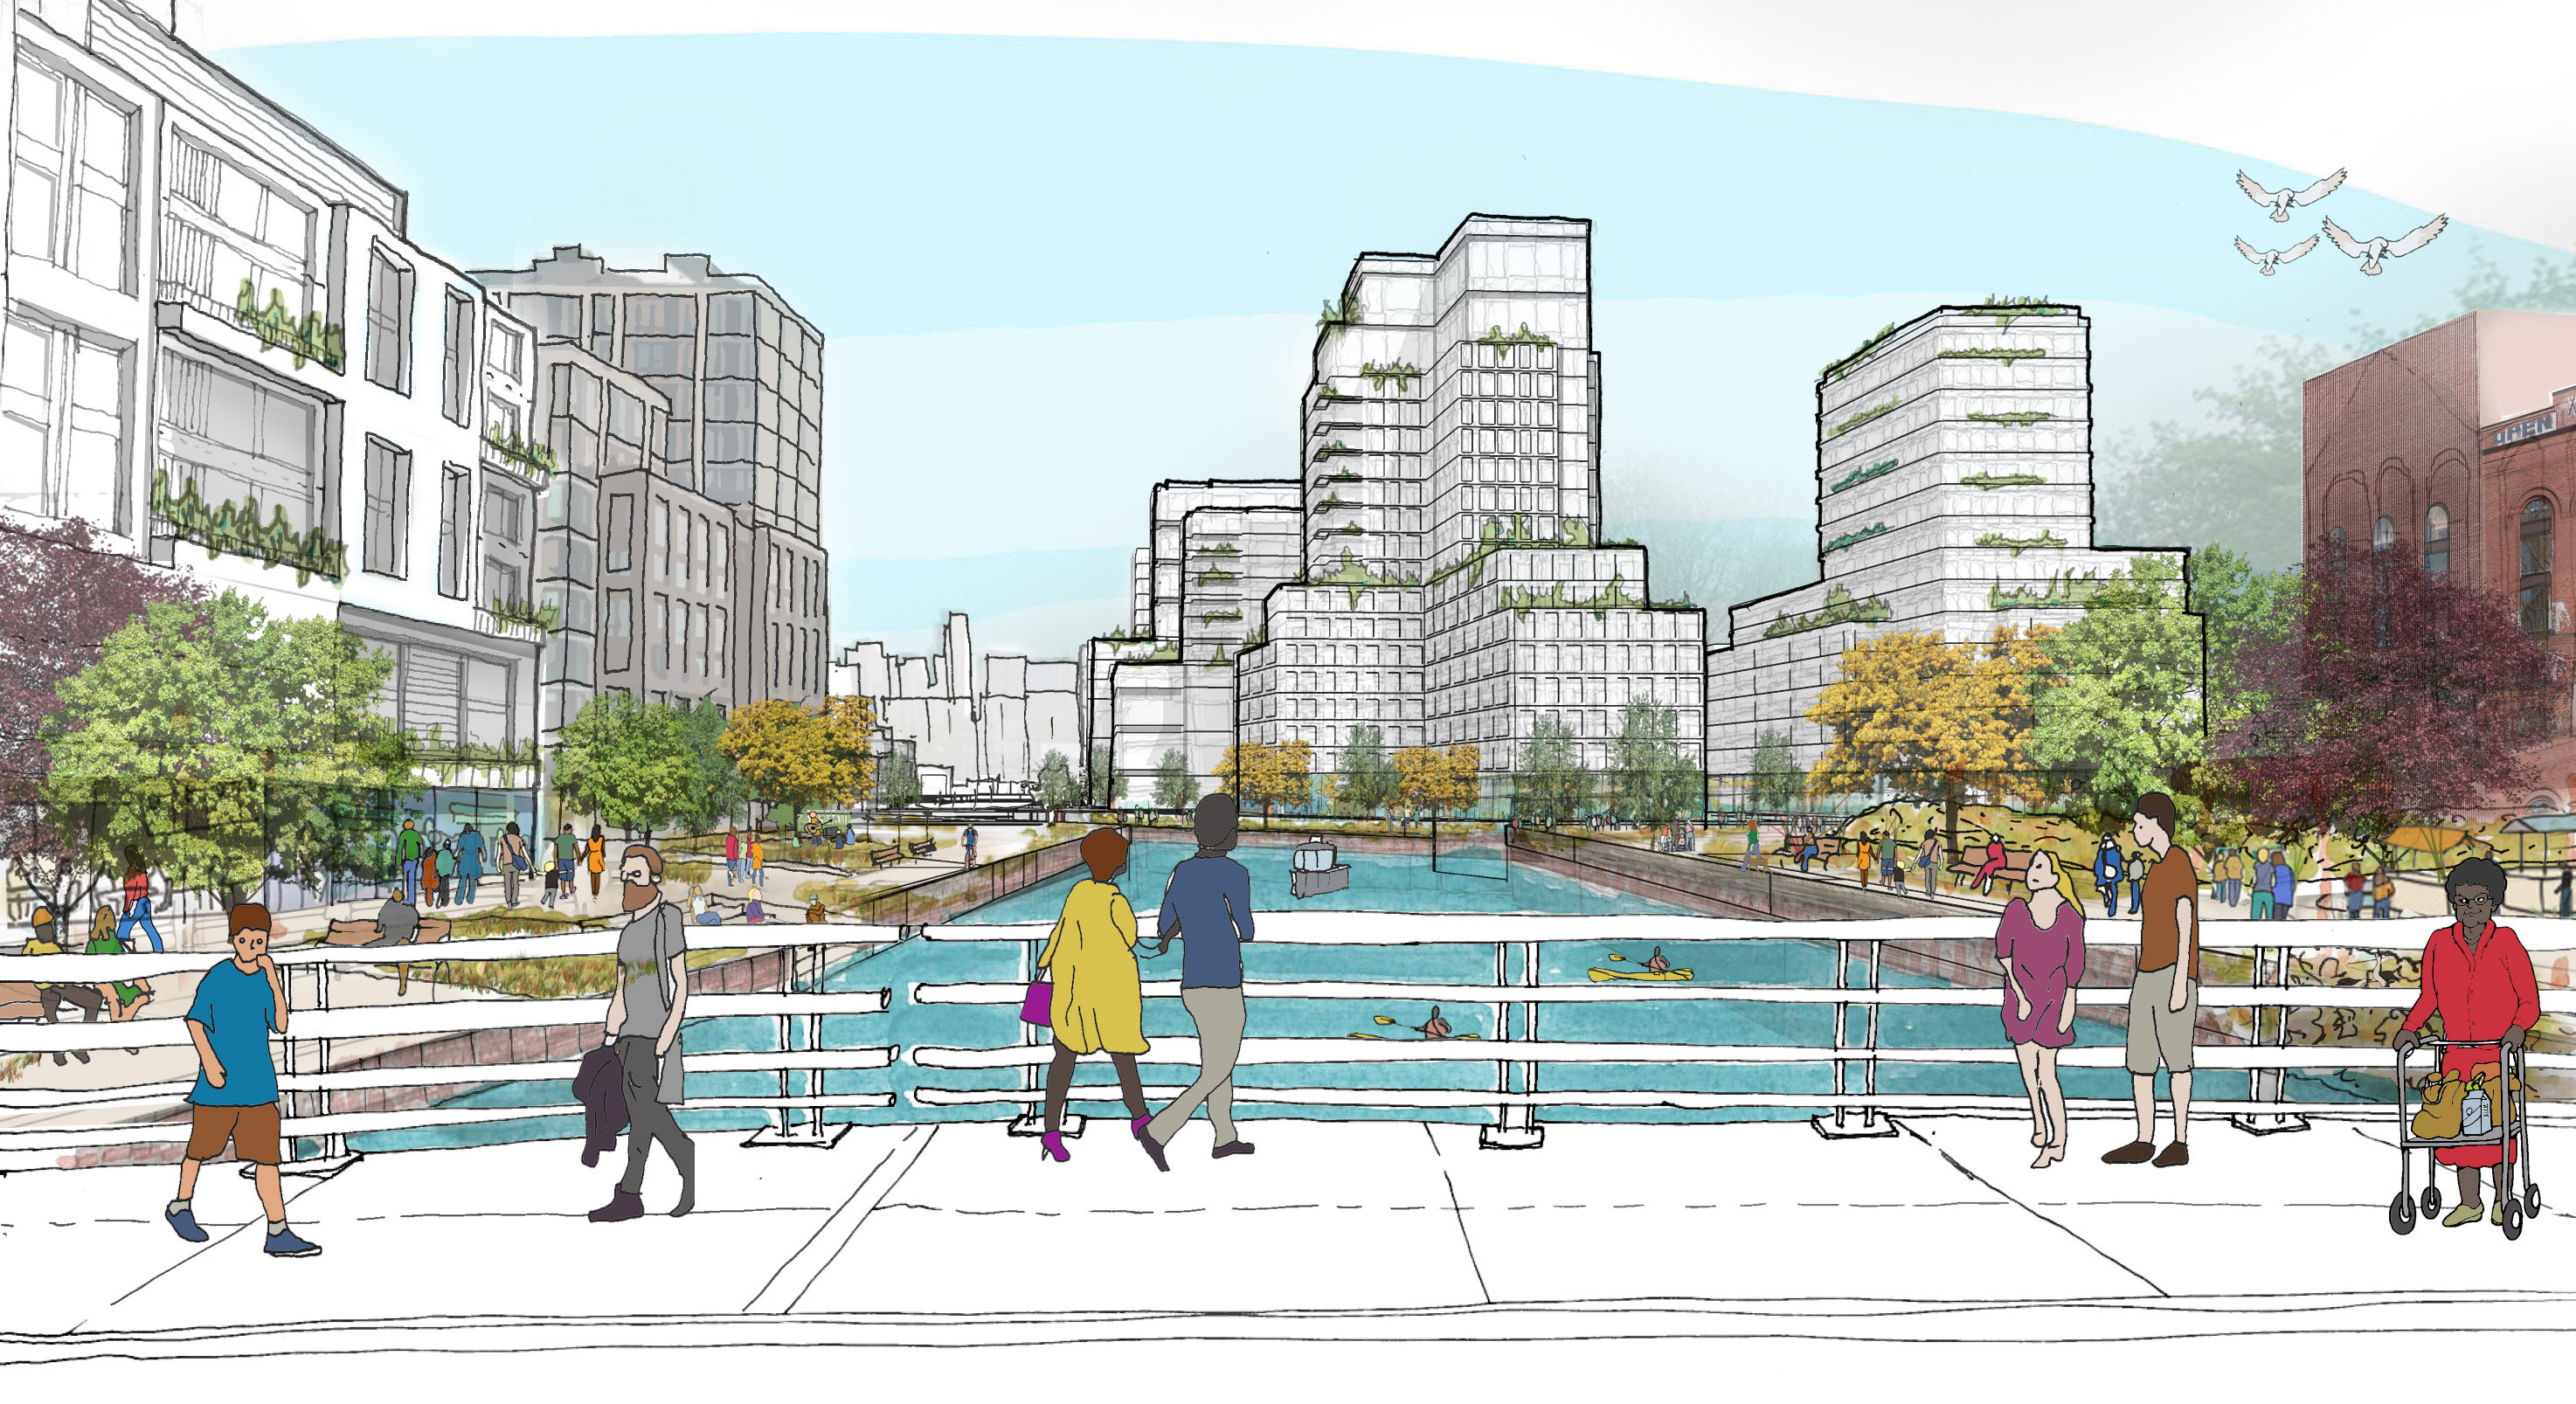 Vision sketch of Gowanus canal bridge crossing with waterfront development and pedestrian activity